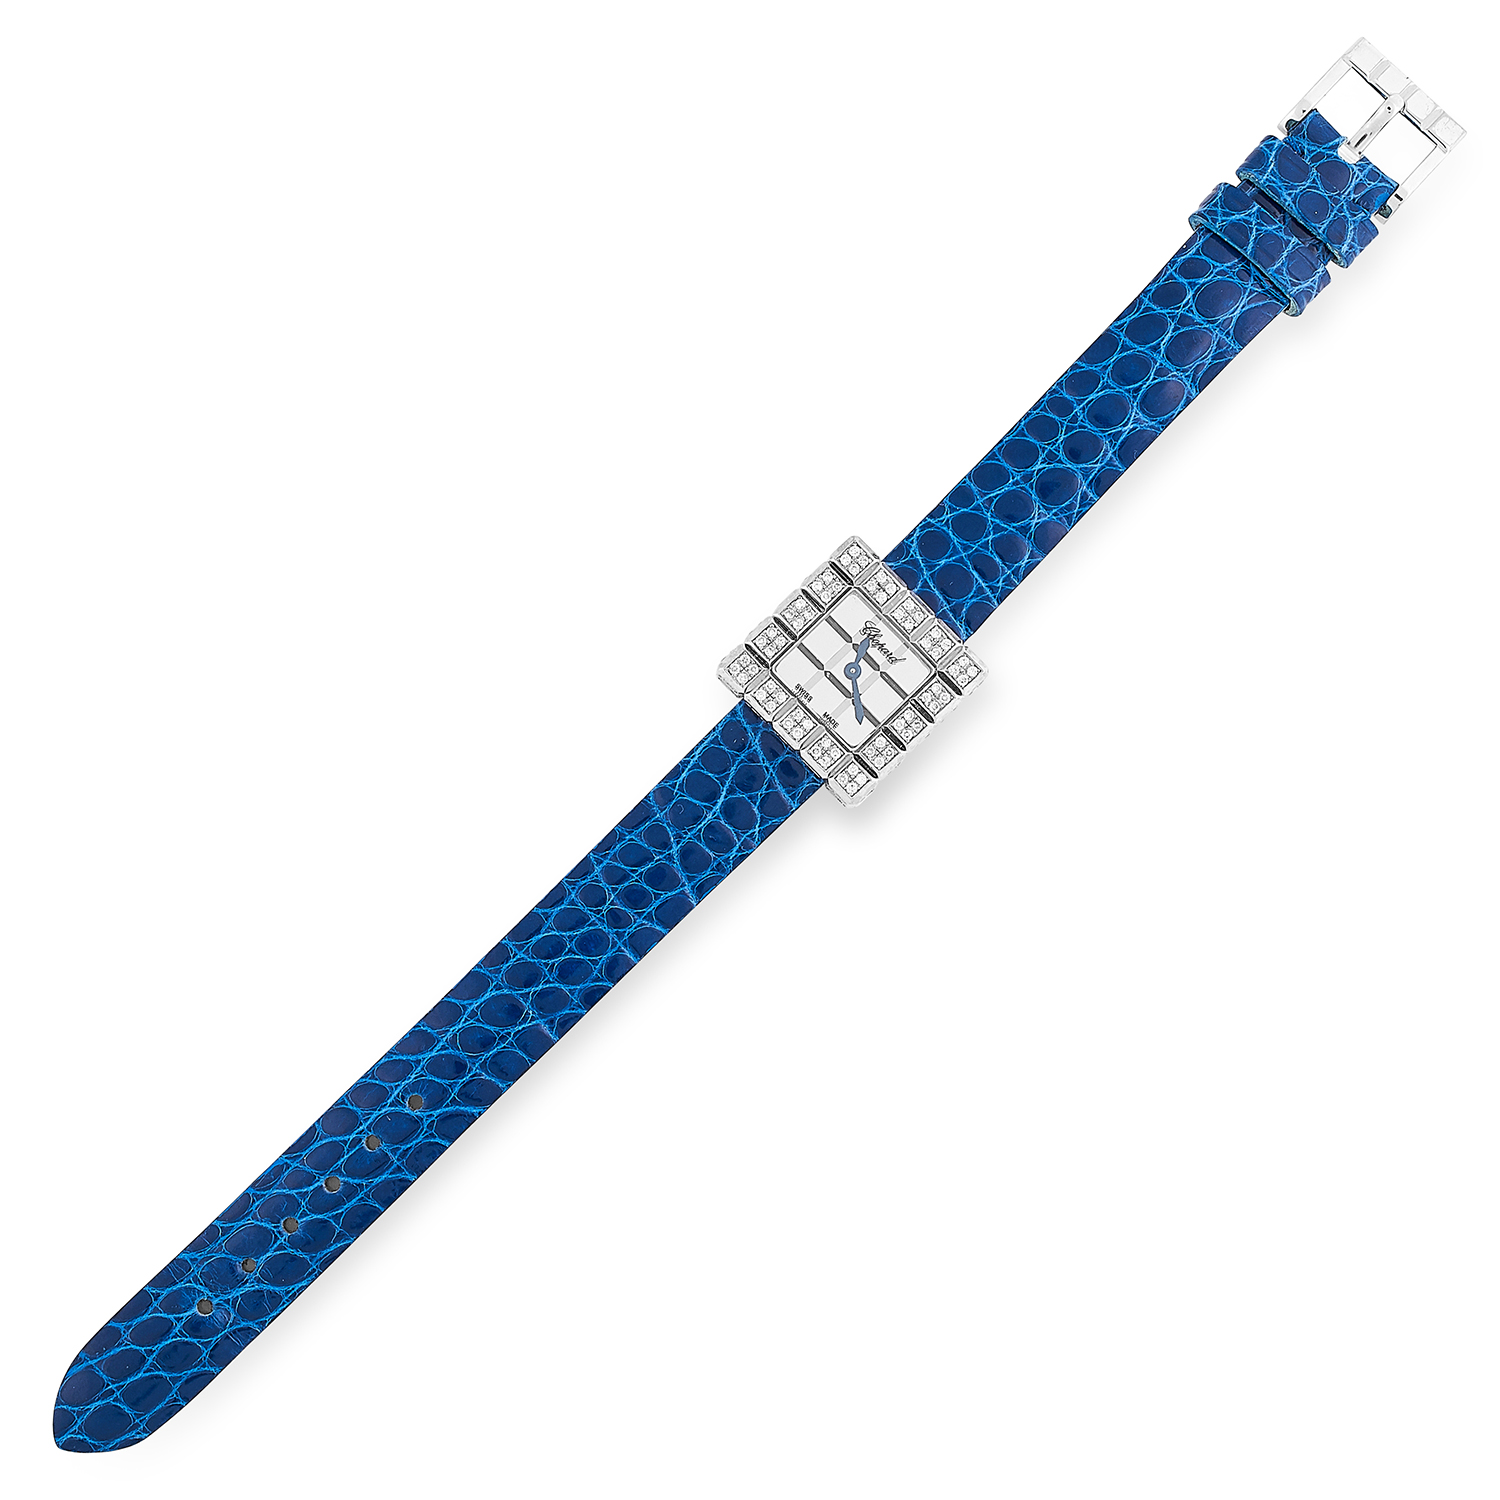 LADIES DIAMOND ICE CUBE WATCH, CHOPARD the bezel set with round cut diamonds and on a blue leather